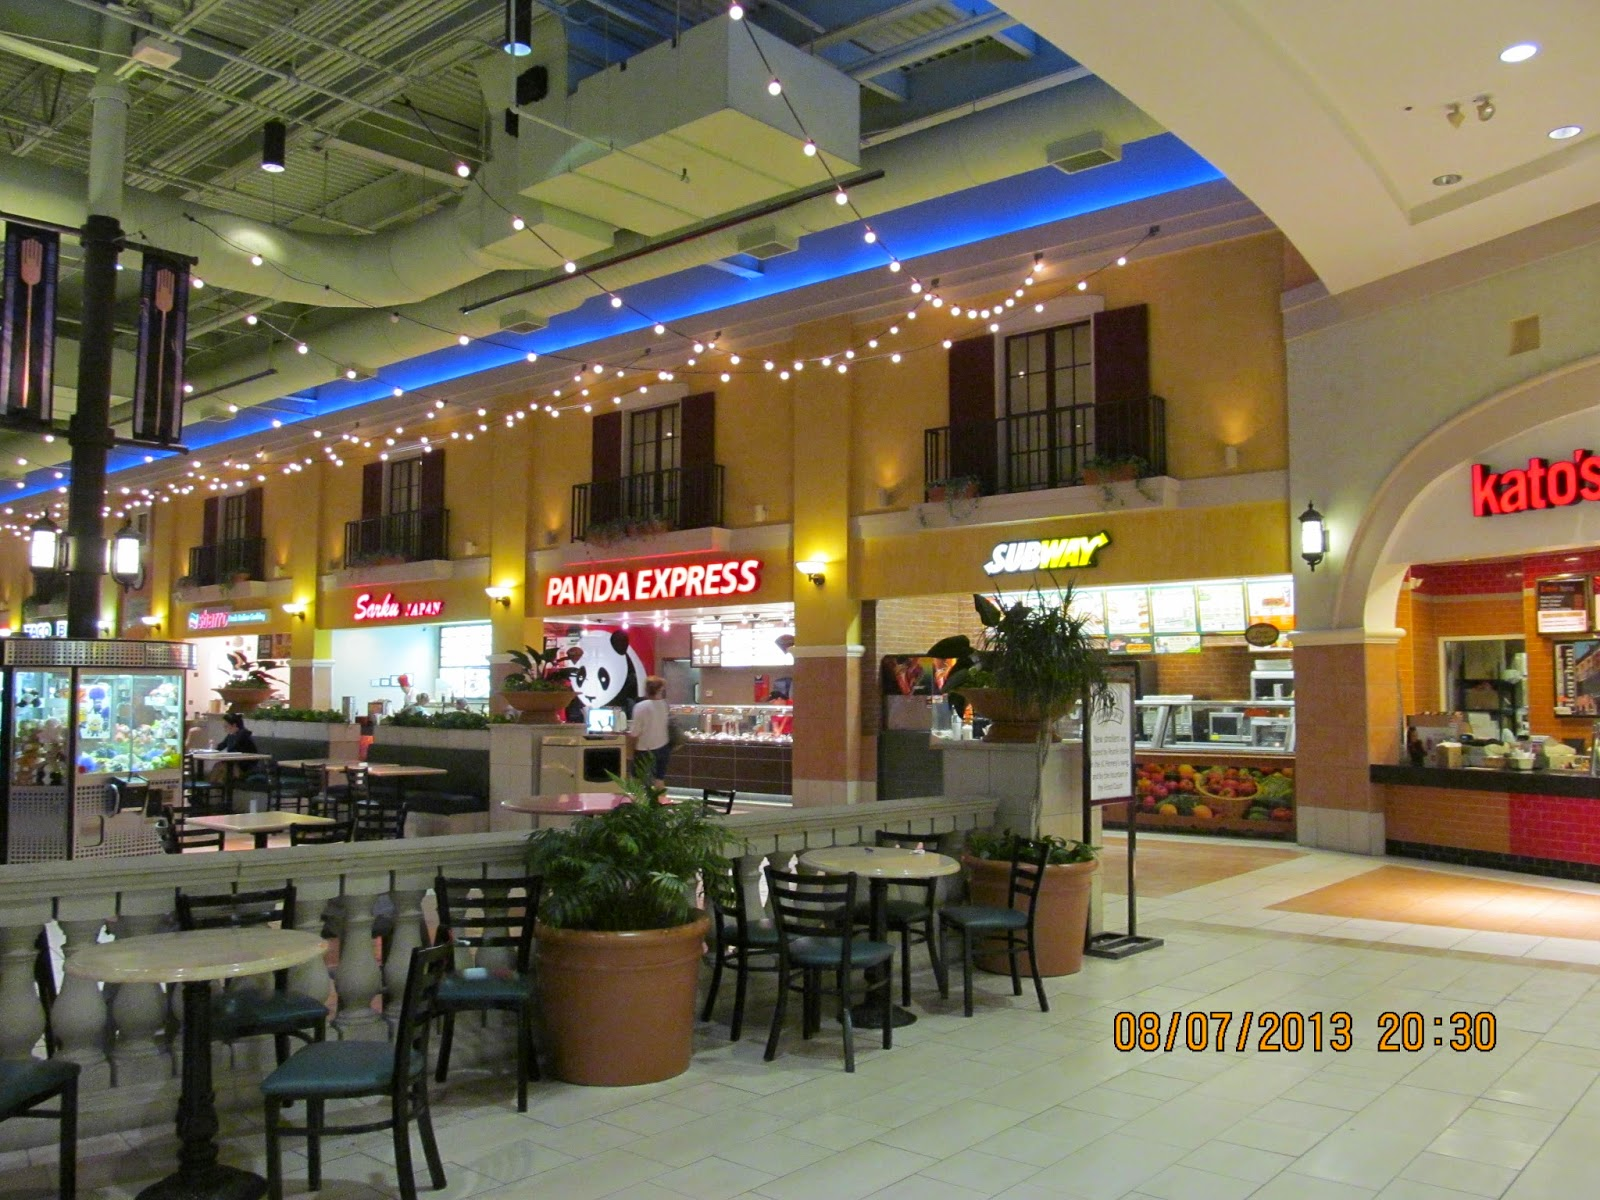 Market Place Shopping Center, store listings, hours, hotels, comment forum and more (Champaign, IL) Other Illinois malls Malls in other states Stores by name/brand Stores by category Special offers & deals Mobile version of this page. Share: Email to a friend. Tweet. Inns & Hotels Near Mall.